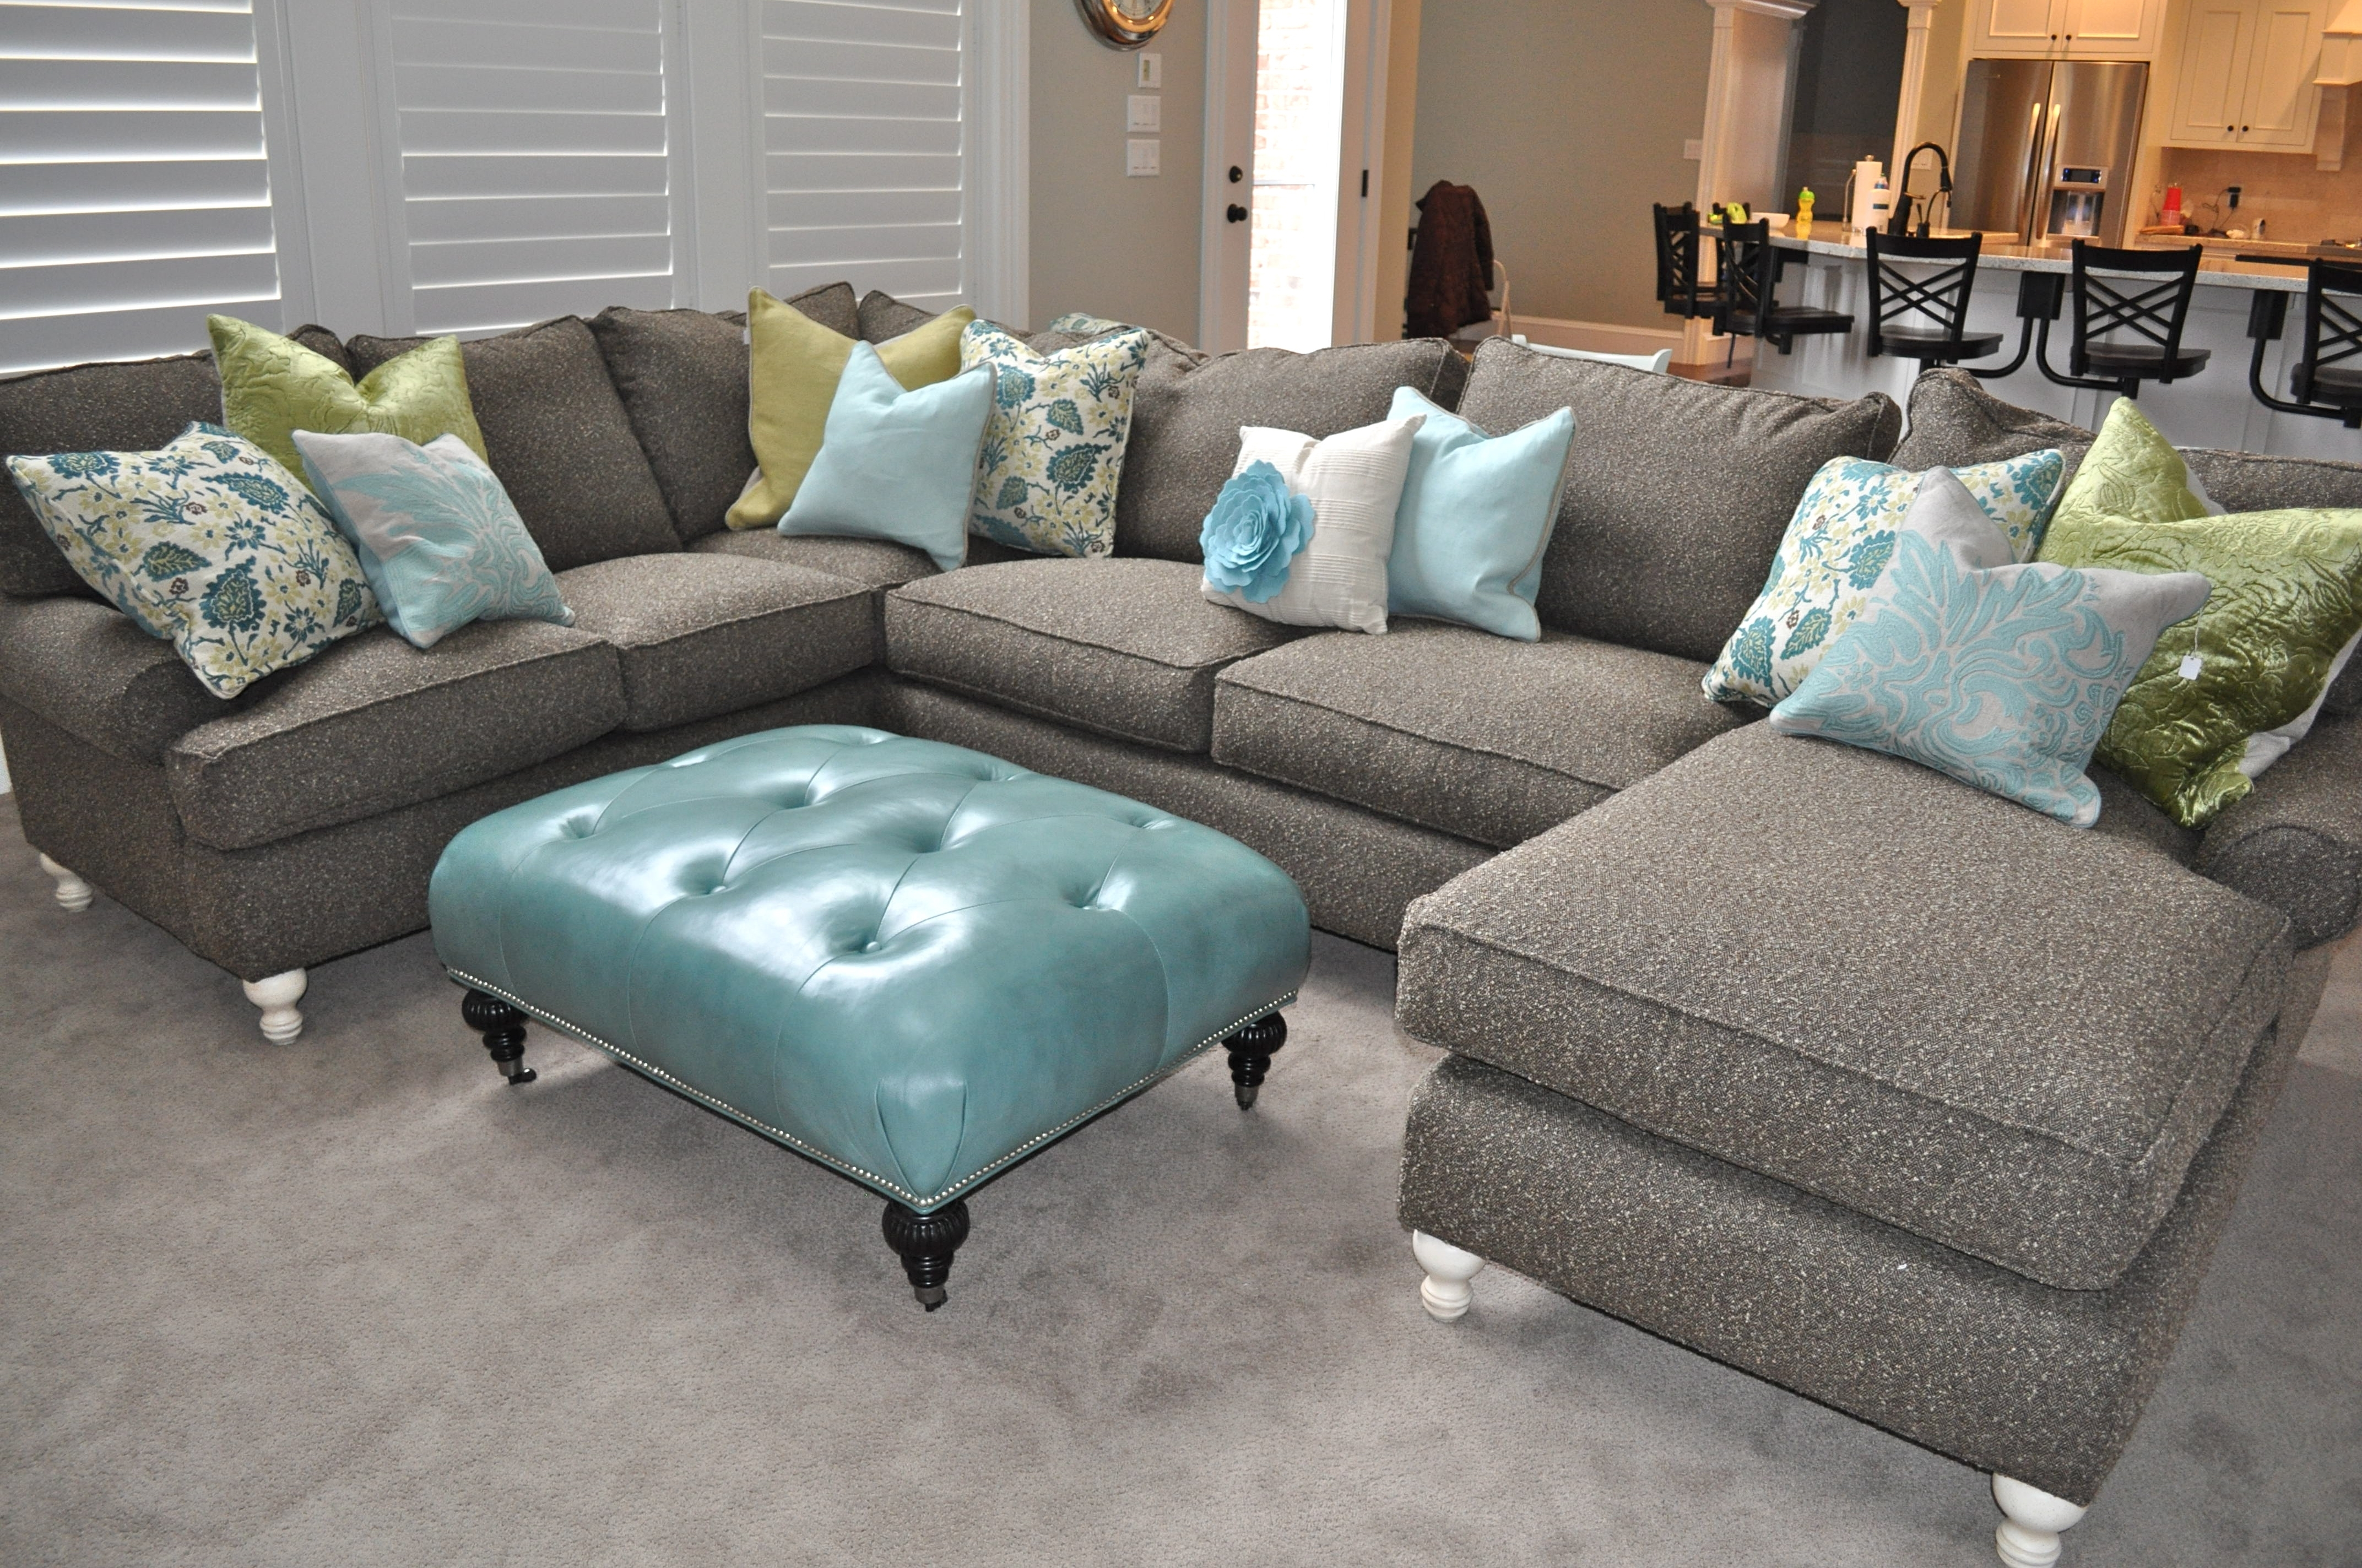 Well Liked Amusing Sectional Sofa With Chaise And Ottoman 81 On Charcoal Gray For Gray Sectional Sofas With Chaise (View 10 of 15)